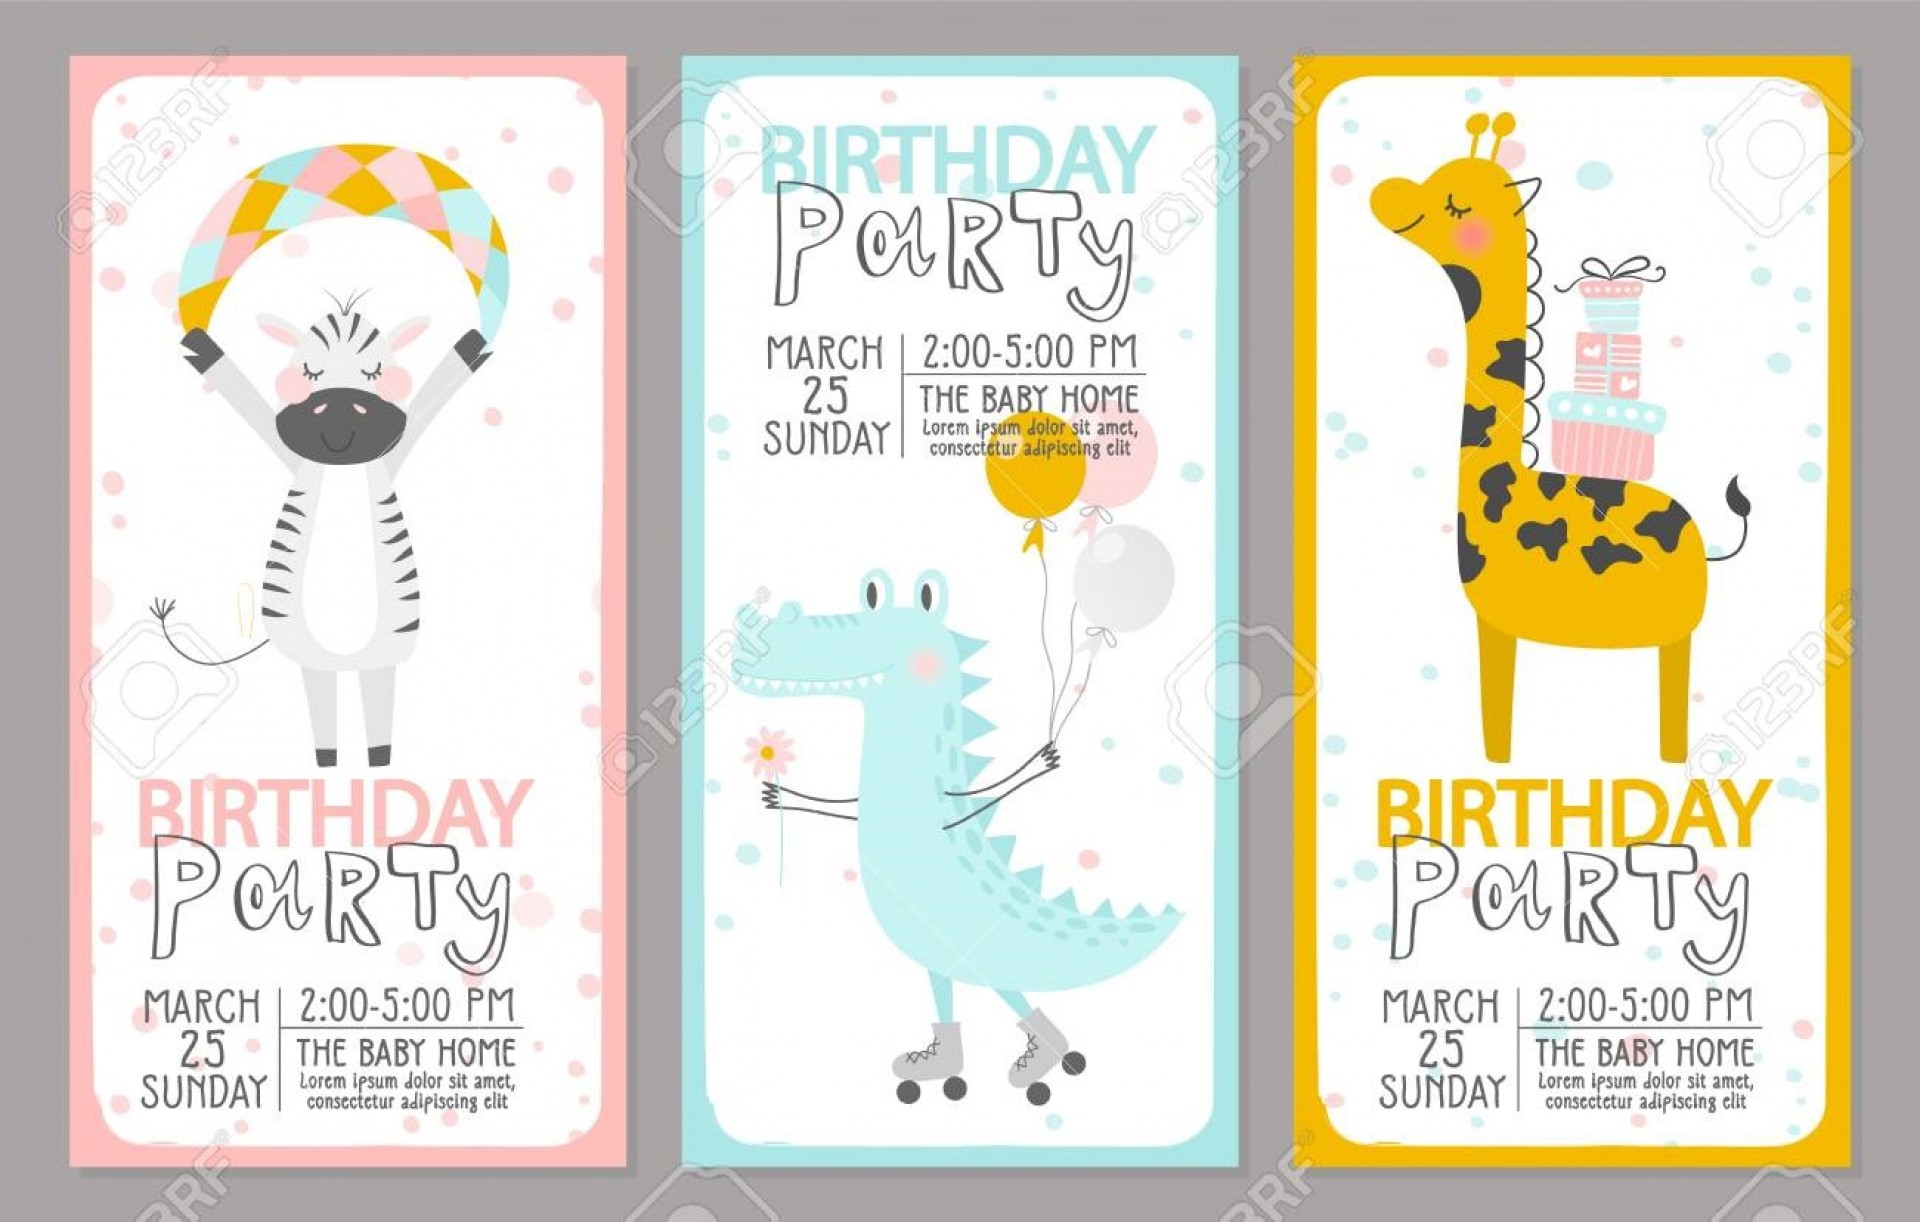 004 Sensational Birthday Party Invitation Template Example  Templates Google Doc 80th Free Download Online1920